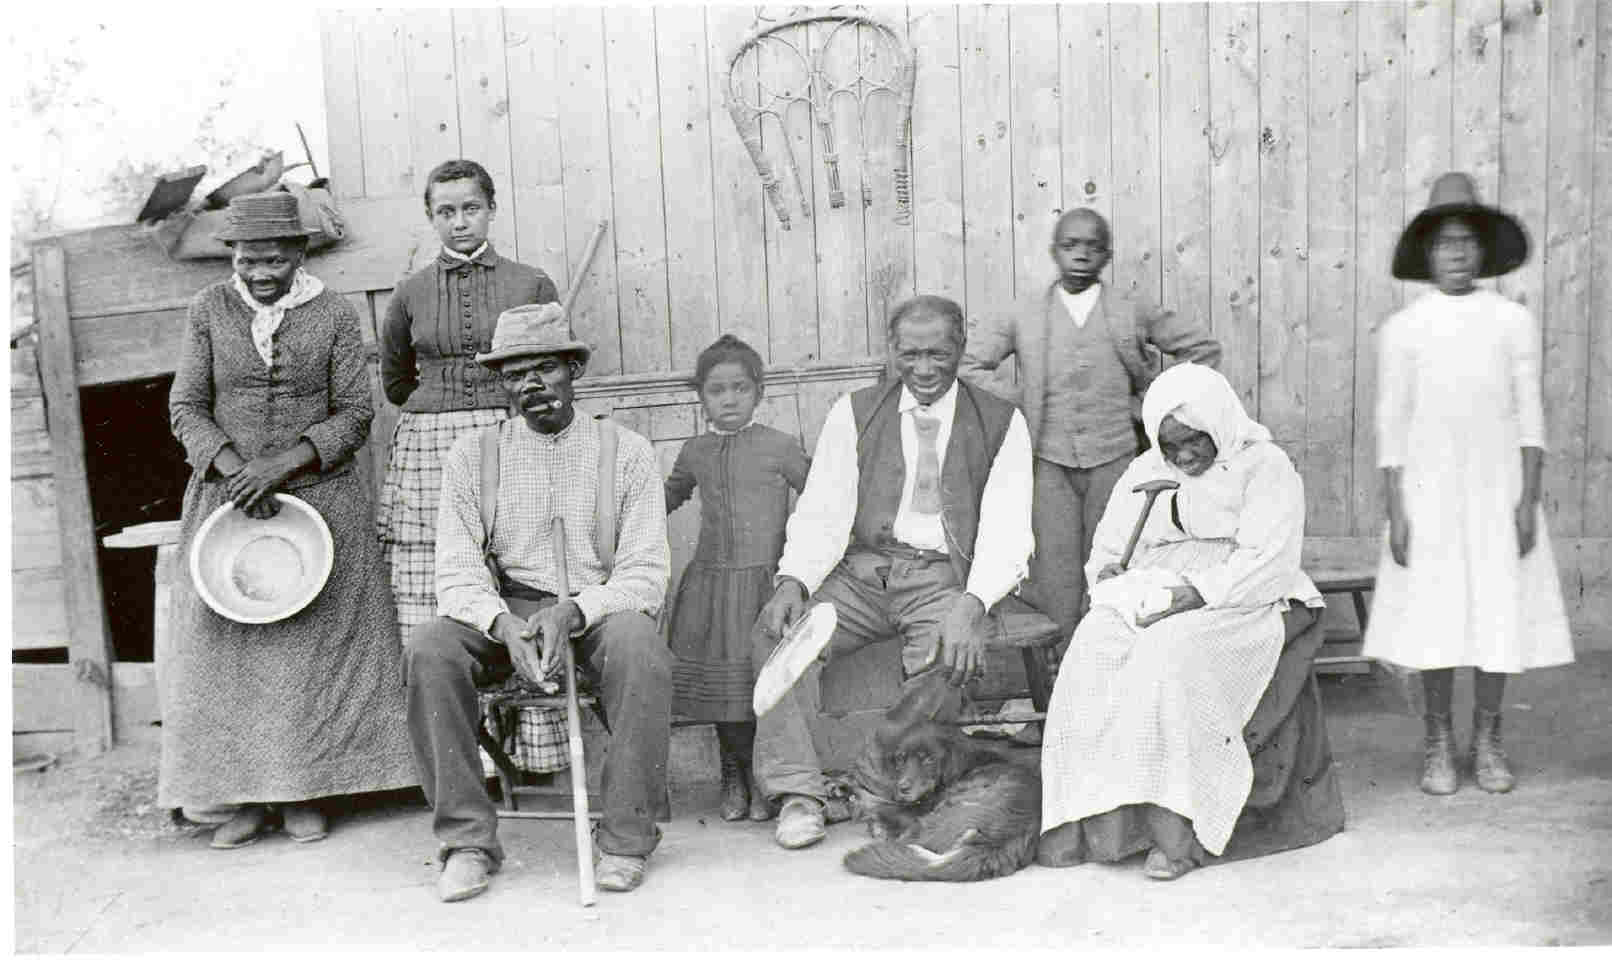 tubmangroupbybarnweb.jpg